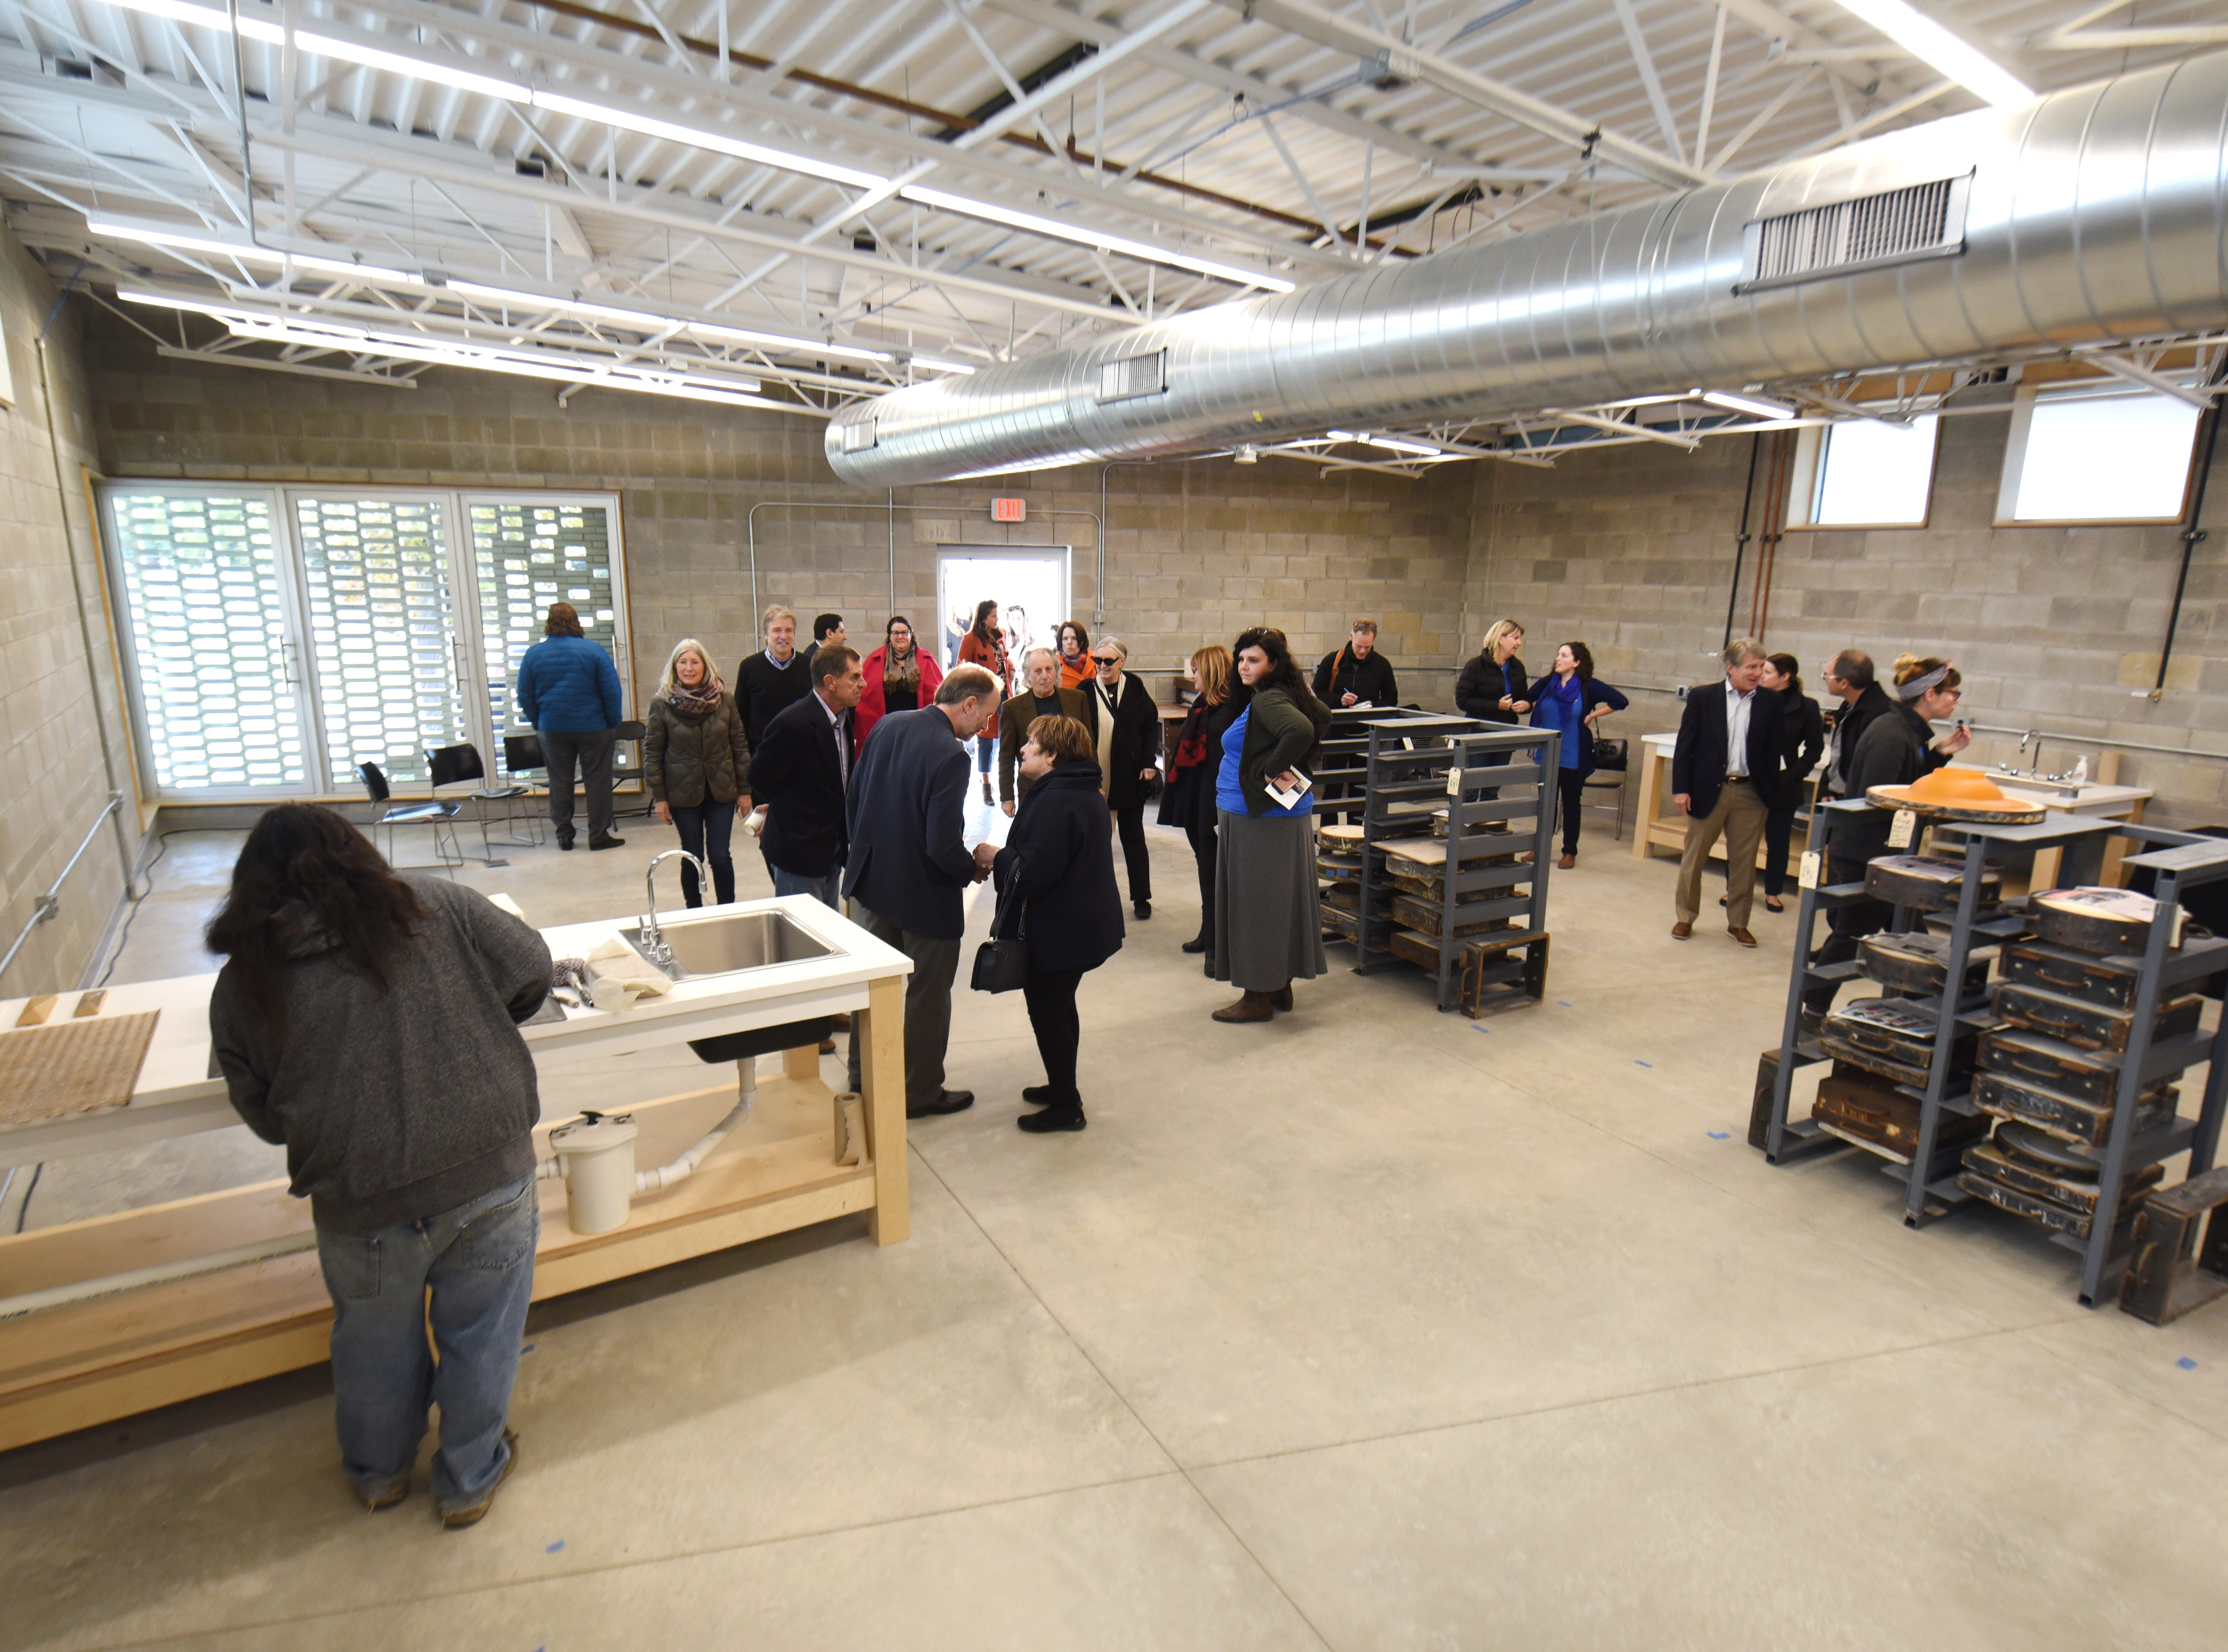 The Maxine and Stuart Frankel Pewabic Tile Studio, opens its 2,500 square-foot addition after their ribbon cutting ceremony